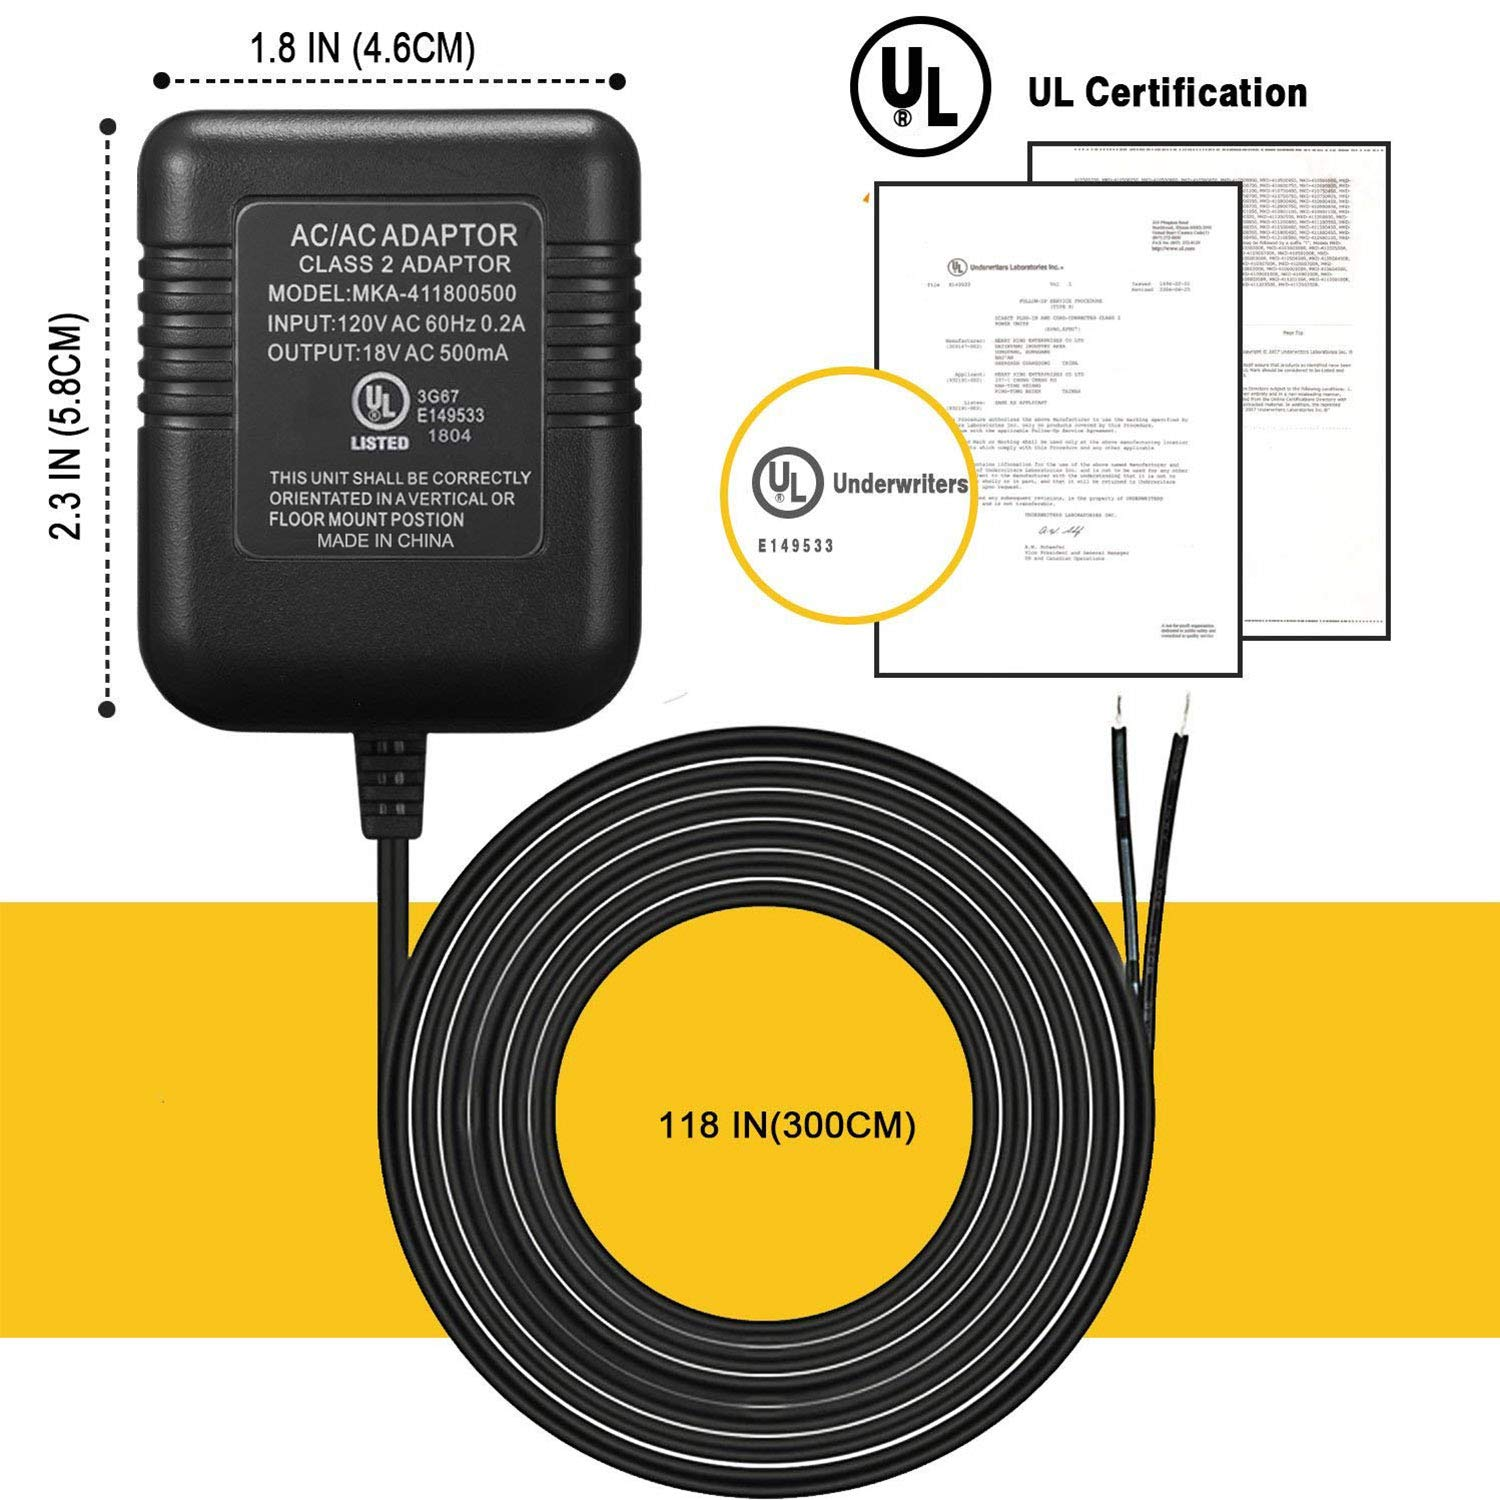 Power Adapter For Ring Doorbell Ul Certificated Supply Correct Wiring Video